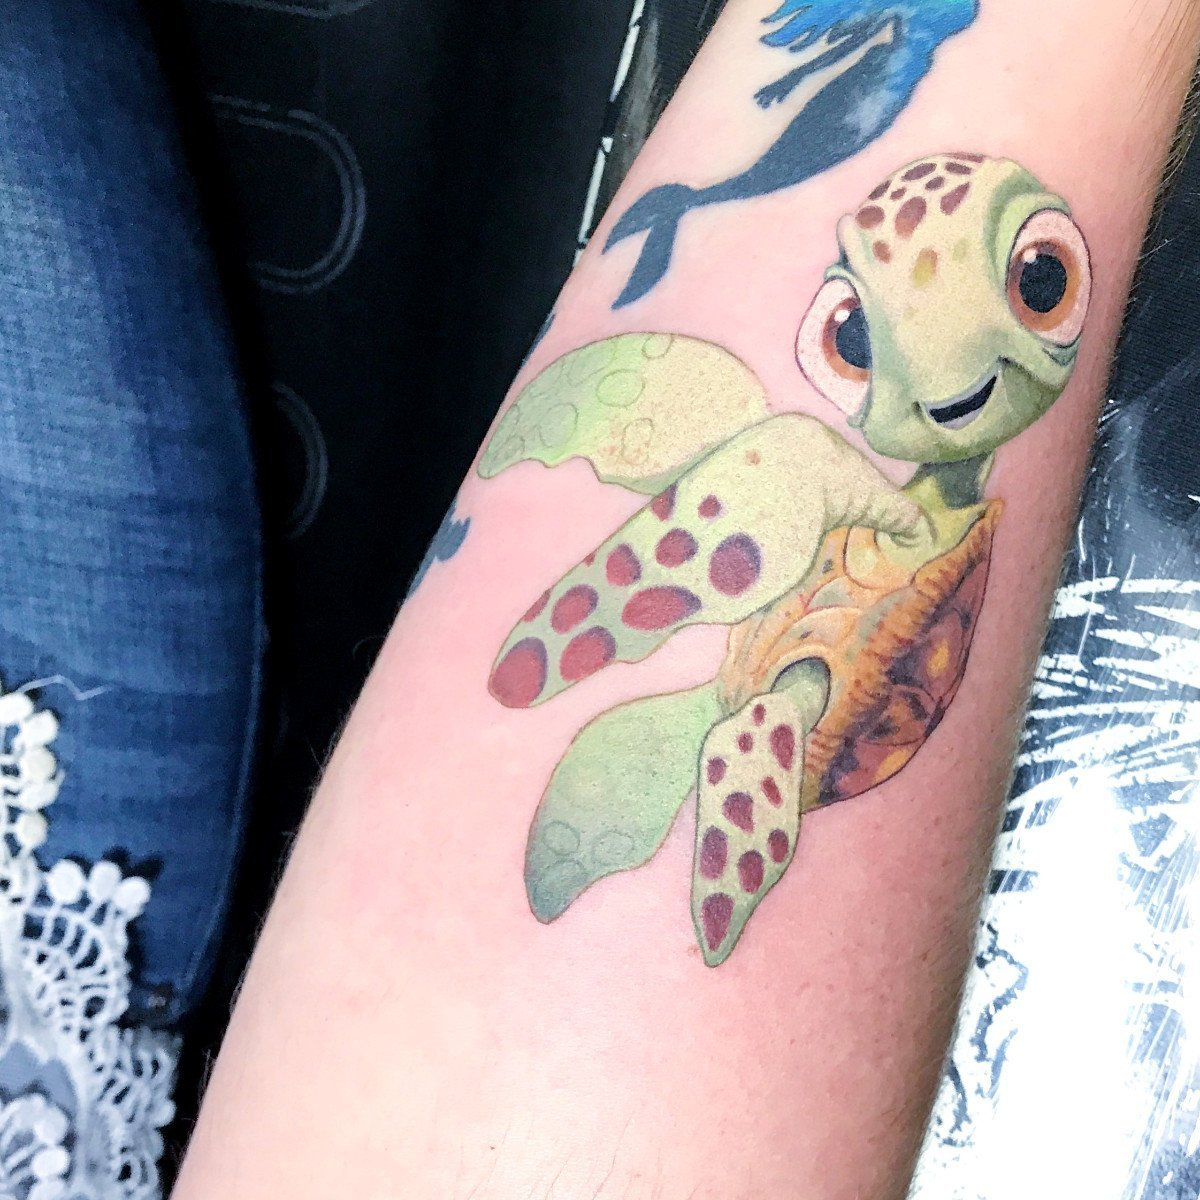 jim down tattoo artist color tattoo turtle